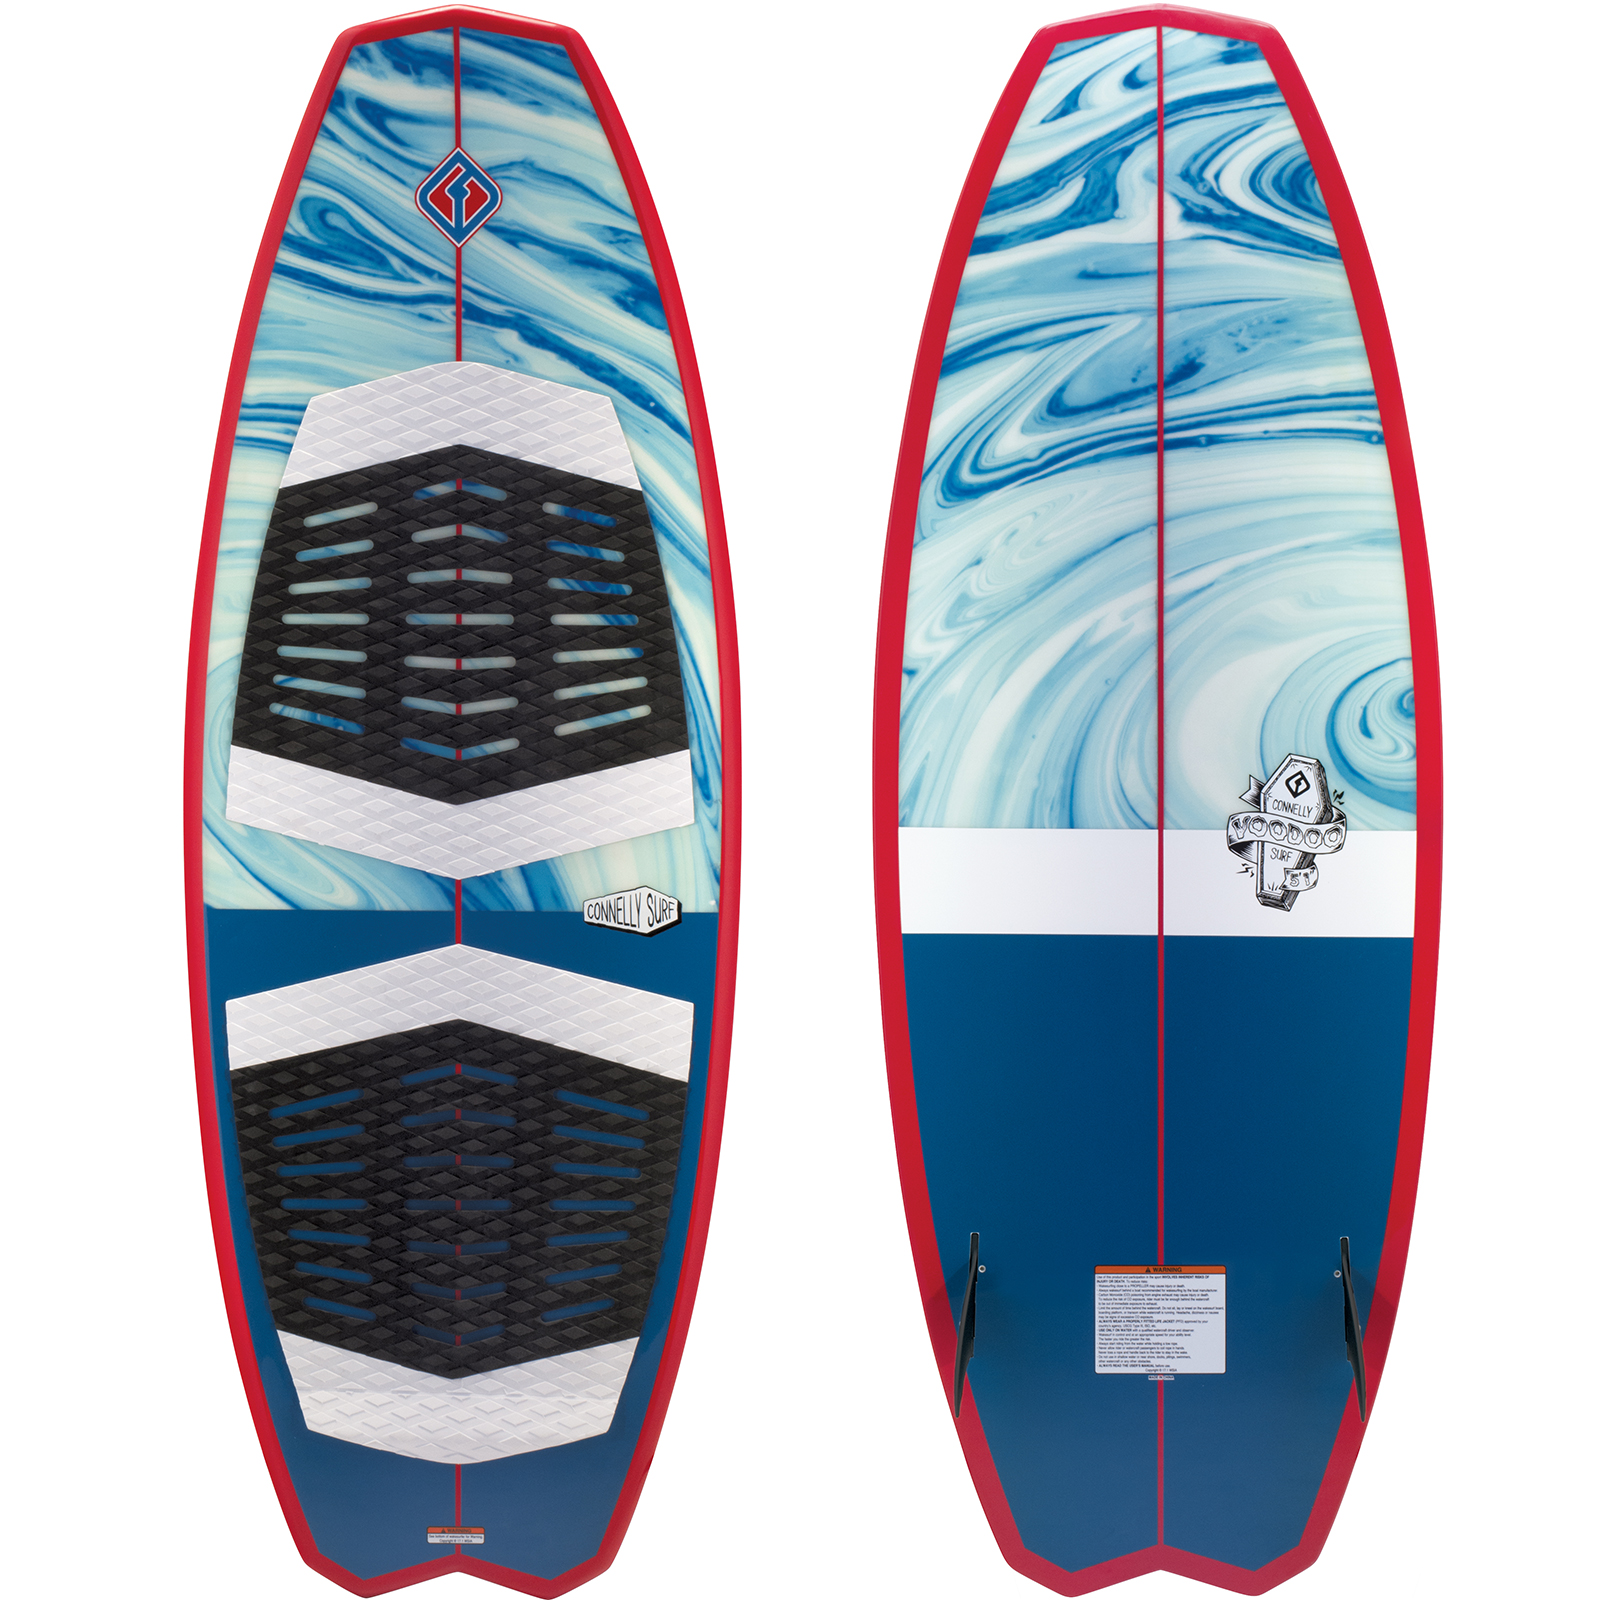 VOODOO 5.1 WAKESURFER CONNELLY 2018